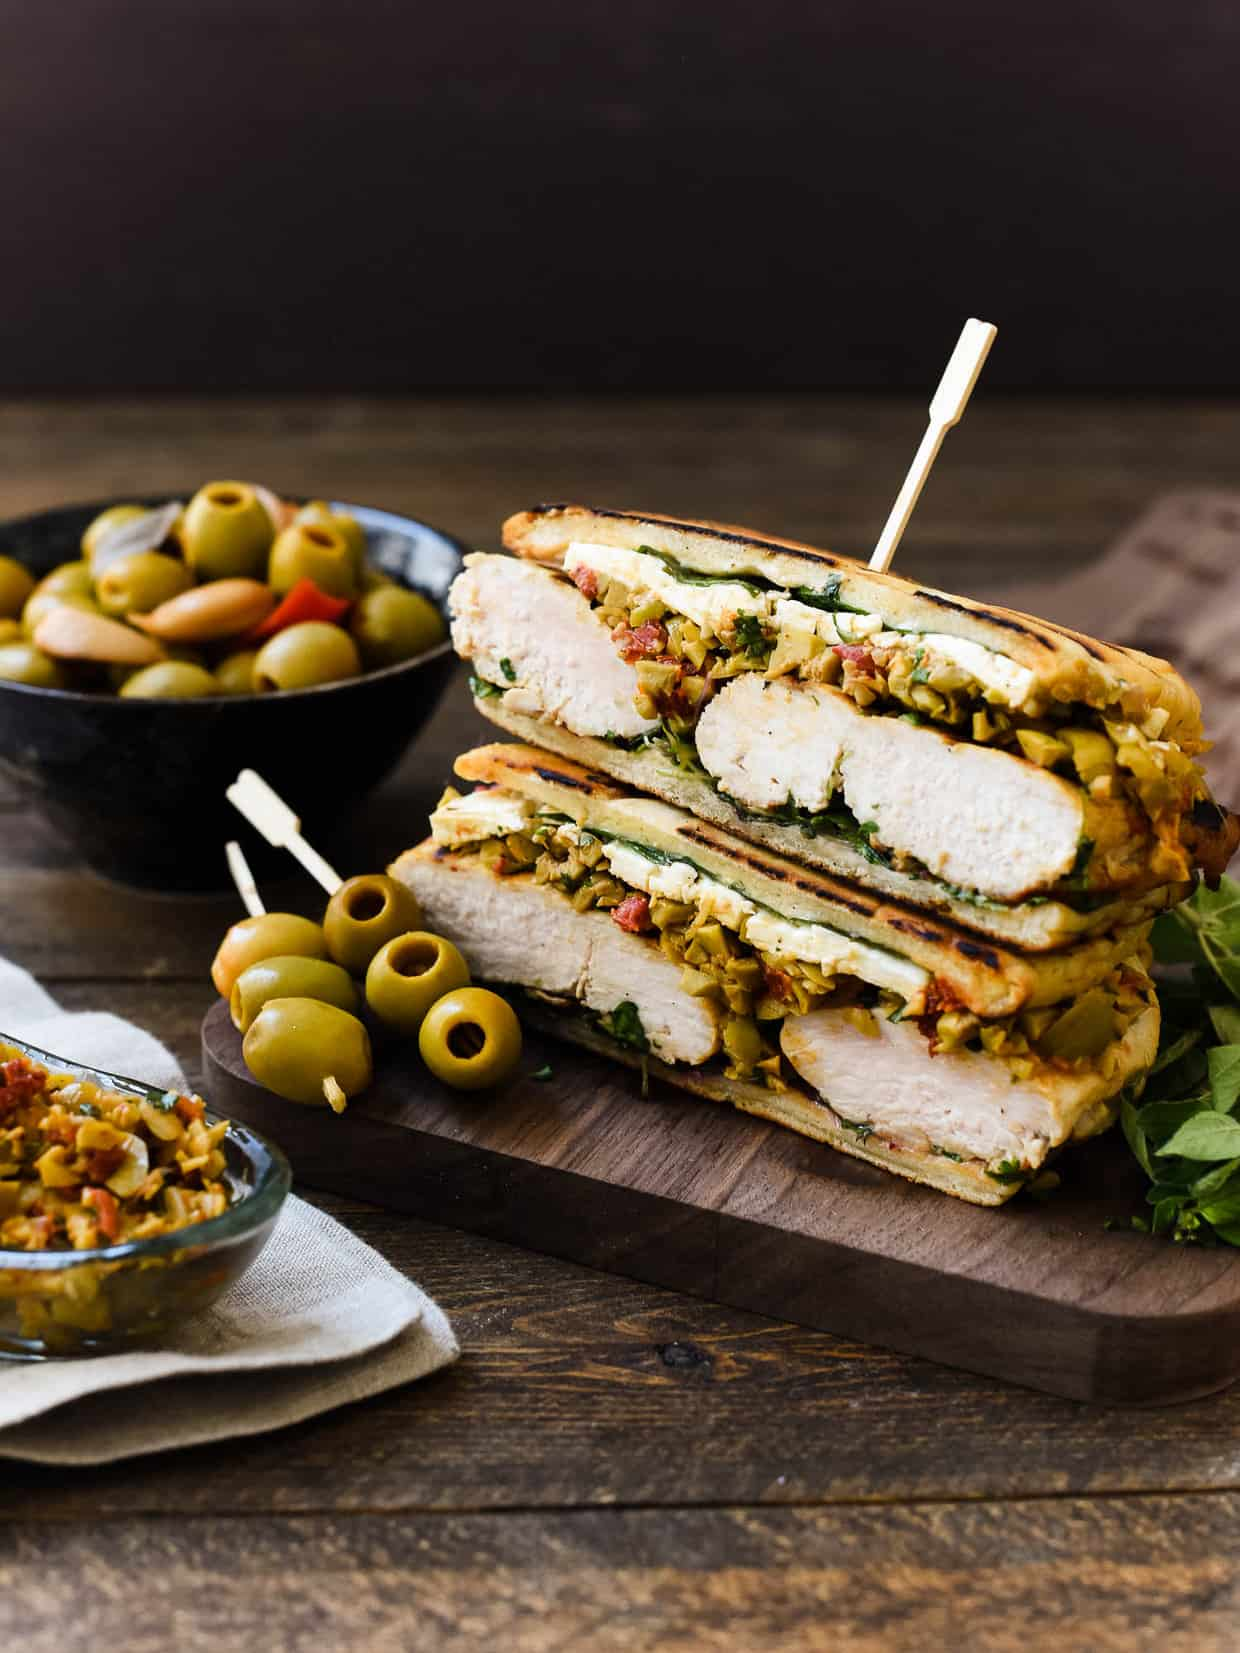 Olive-brined Chicken Sandwich with Olive Tapenade